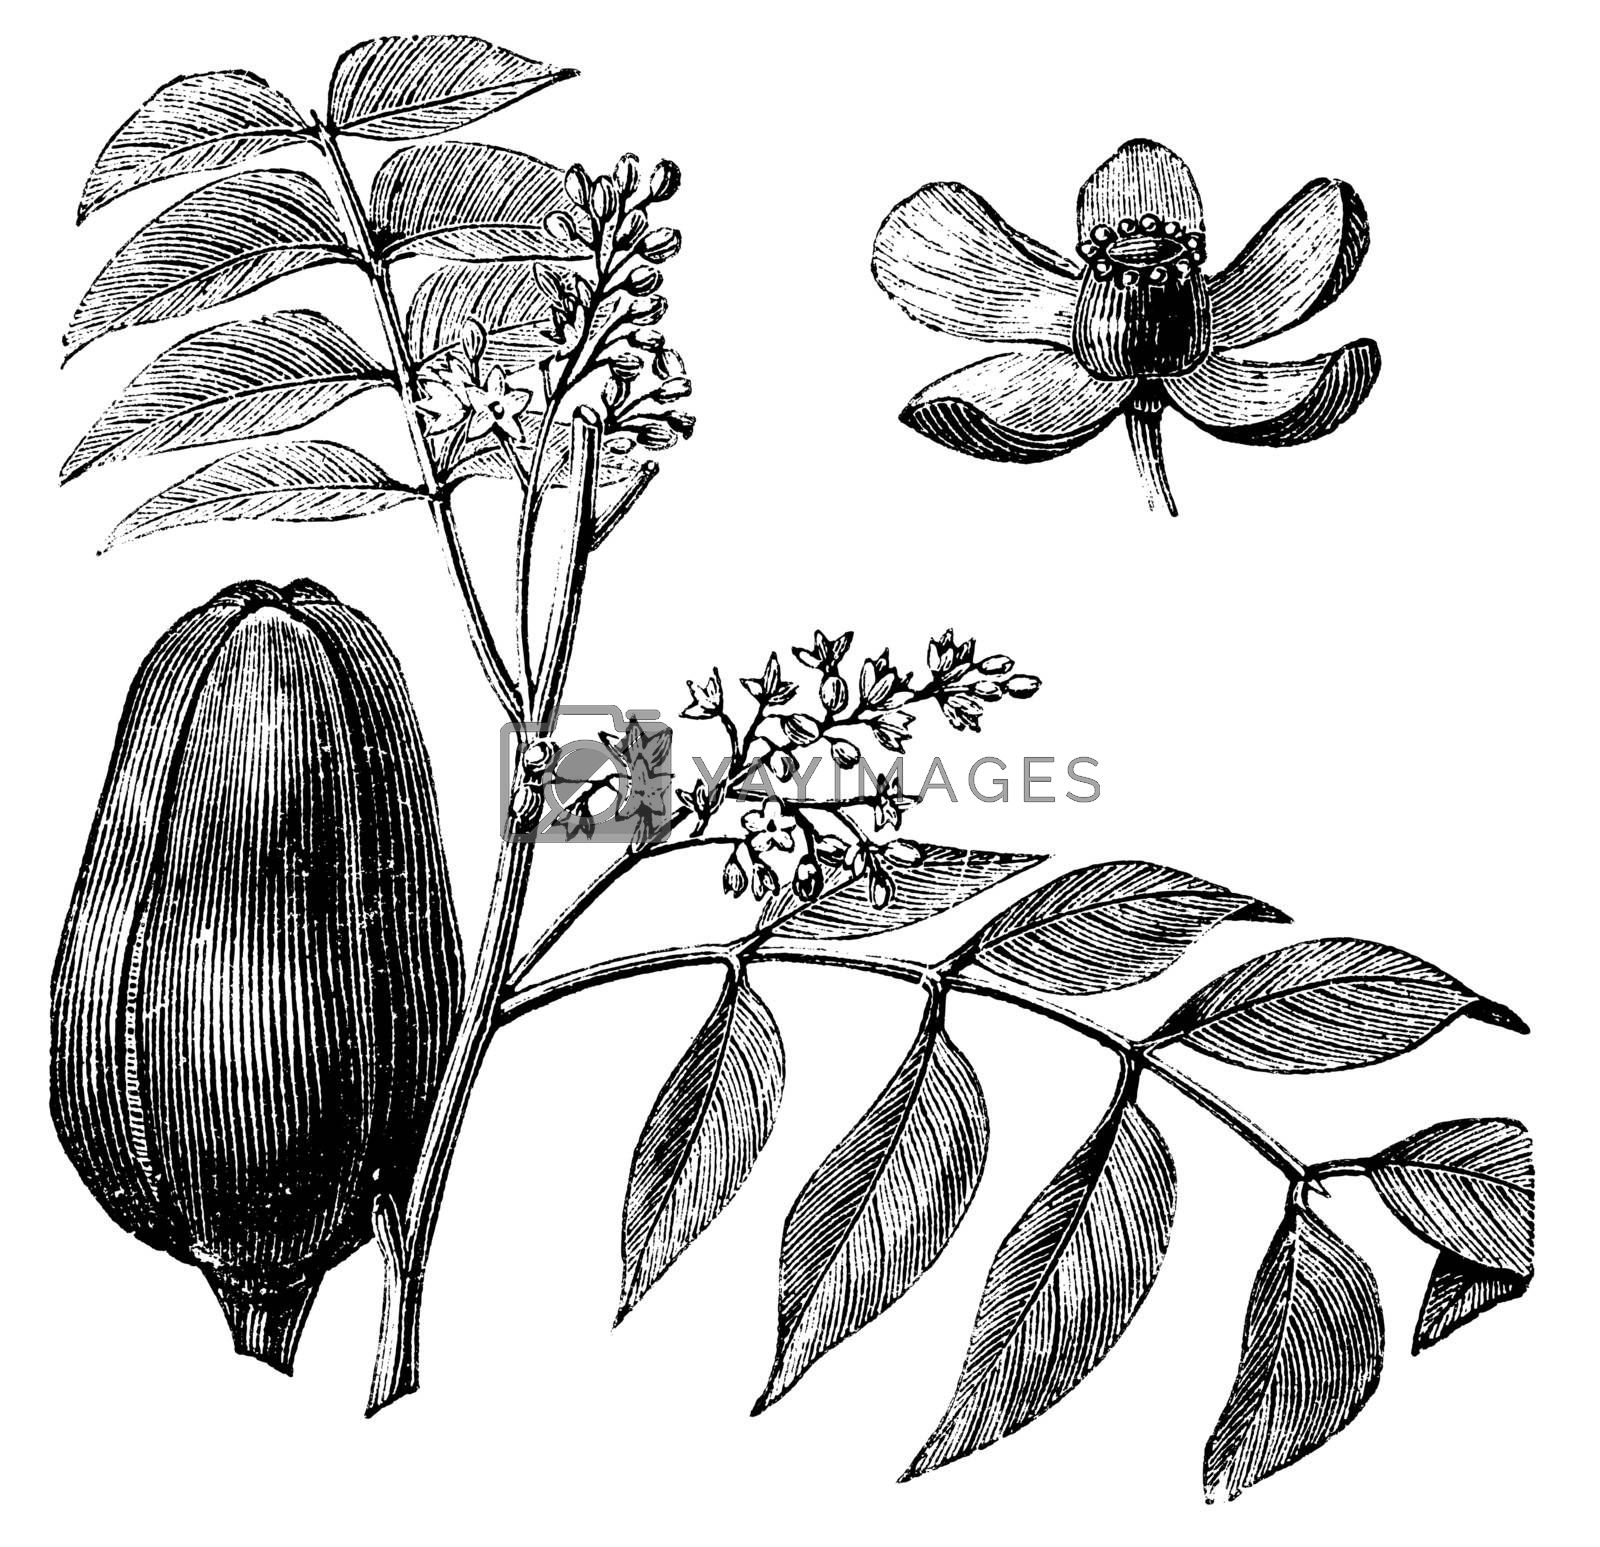 Mohagany or Meliaceae. Melia azedarach illustration. Also called Persian Lilac, White Cedar, Chinaberry, Texas Umbrella, Bead Tree, Lunumidella, Ceylon Cedar, malai vembu, Bakain and Dharek/Dhraik. Branch with close-up of the fruit and flower.